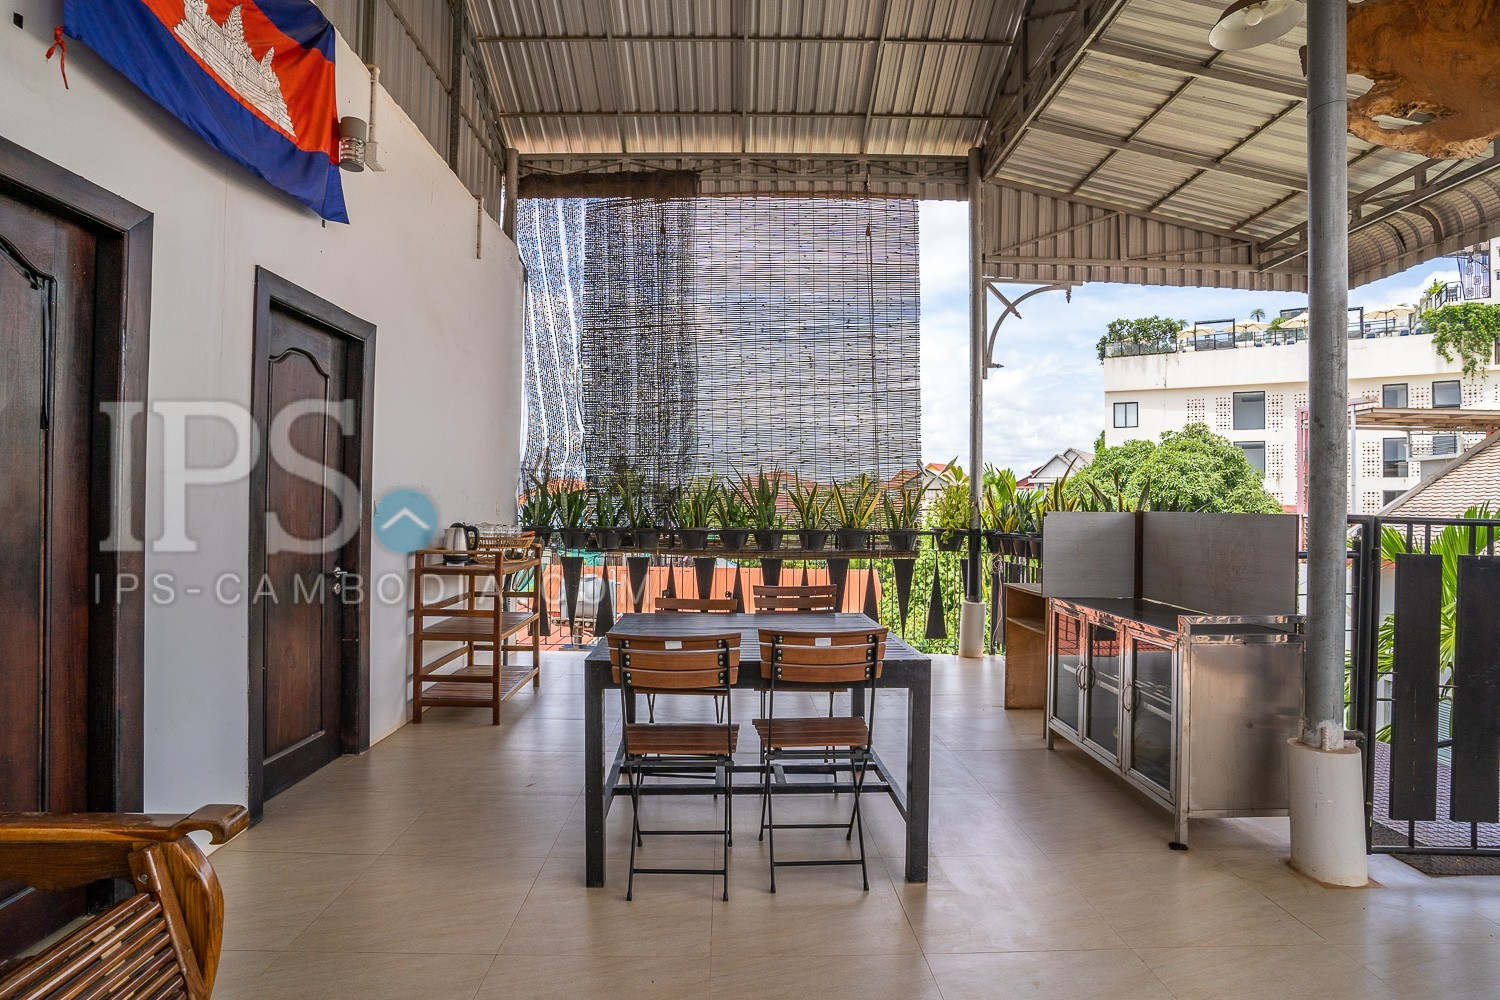 2 Studio Apartment For Rent - Svay Dangkum, Siem Reap